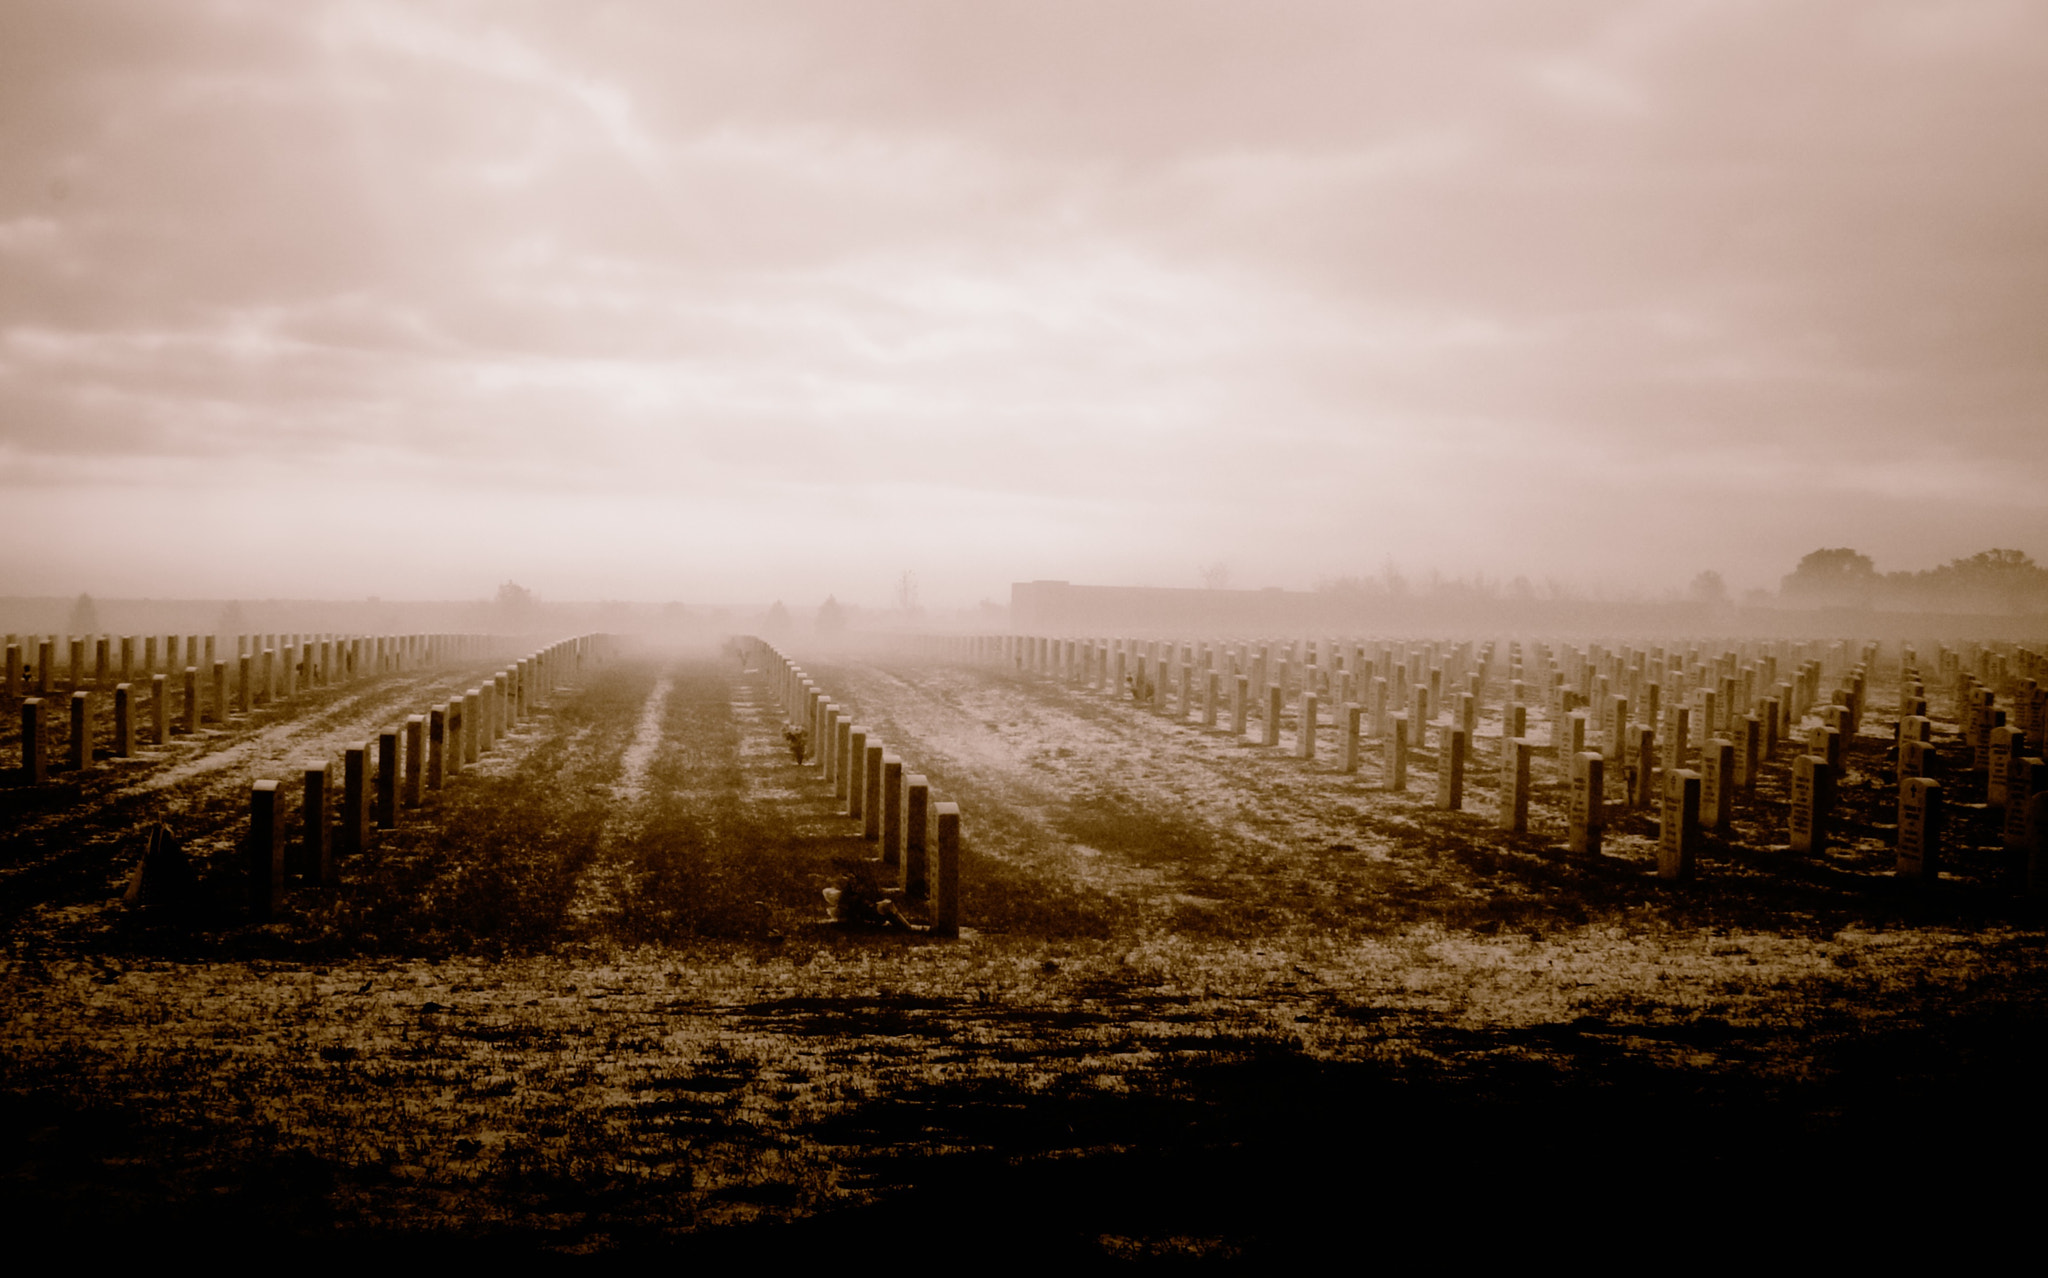 Photograph Graves In The Mist by Bradley Gordon on 500px